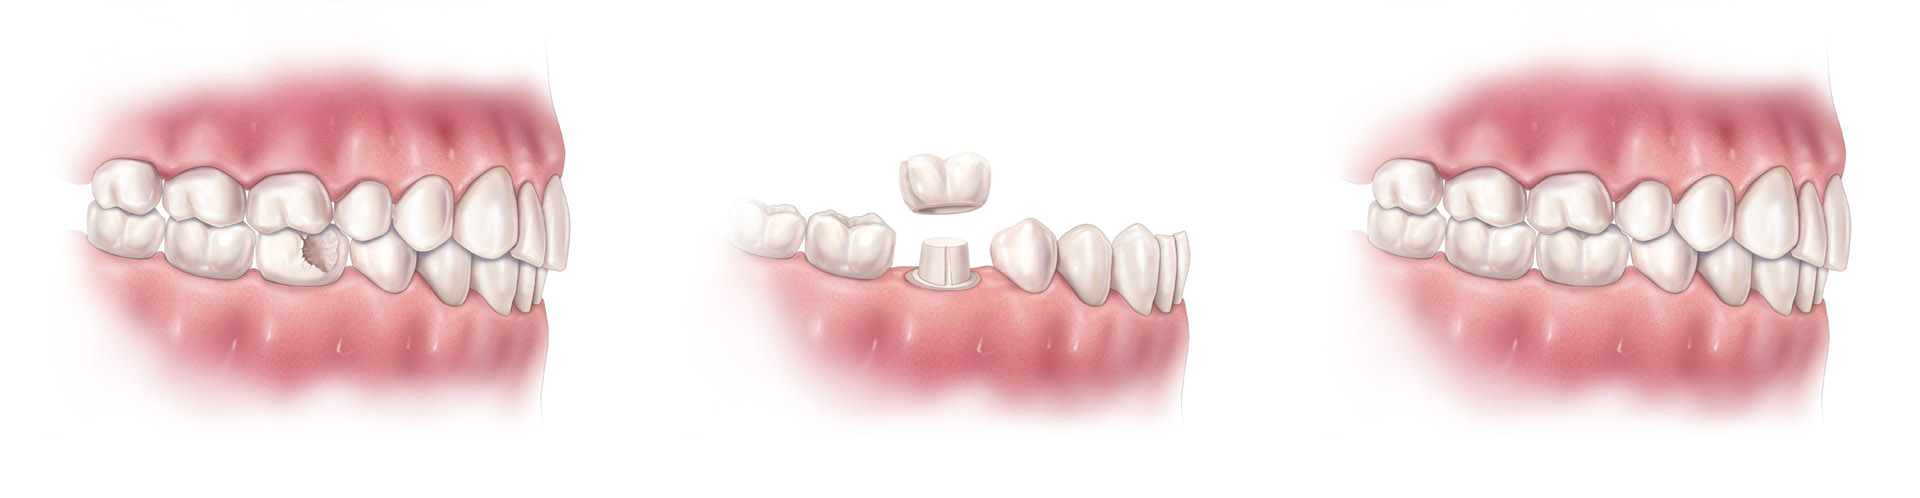 Procedure to prepare and fit dental crowns